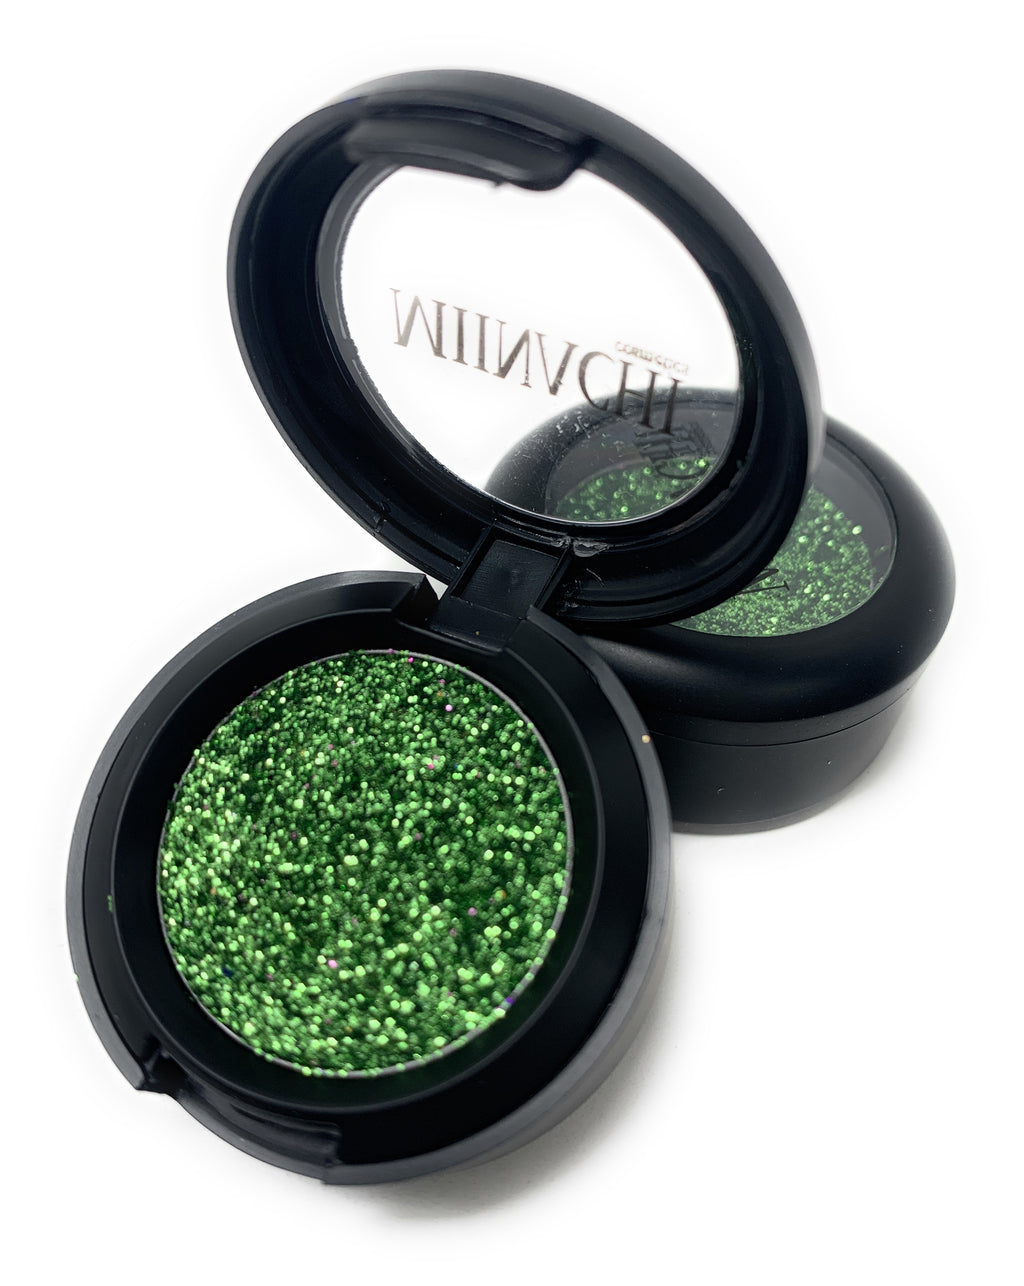 Single Pressed Glitter in the shade Poison Ivy, No Glue Needed, In Compact, Pigmented, No Fall Out, Glitter, Cosmetic Grade Glitter, Green